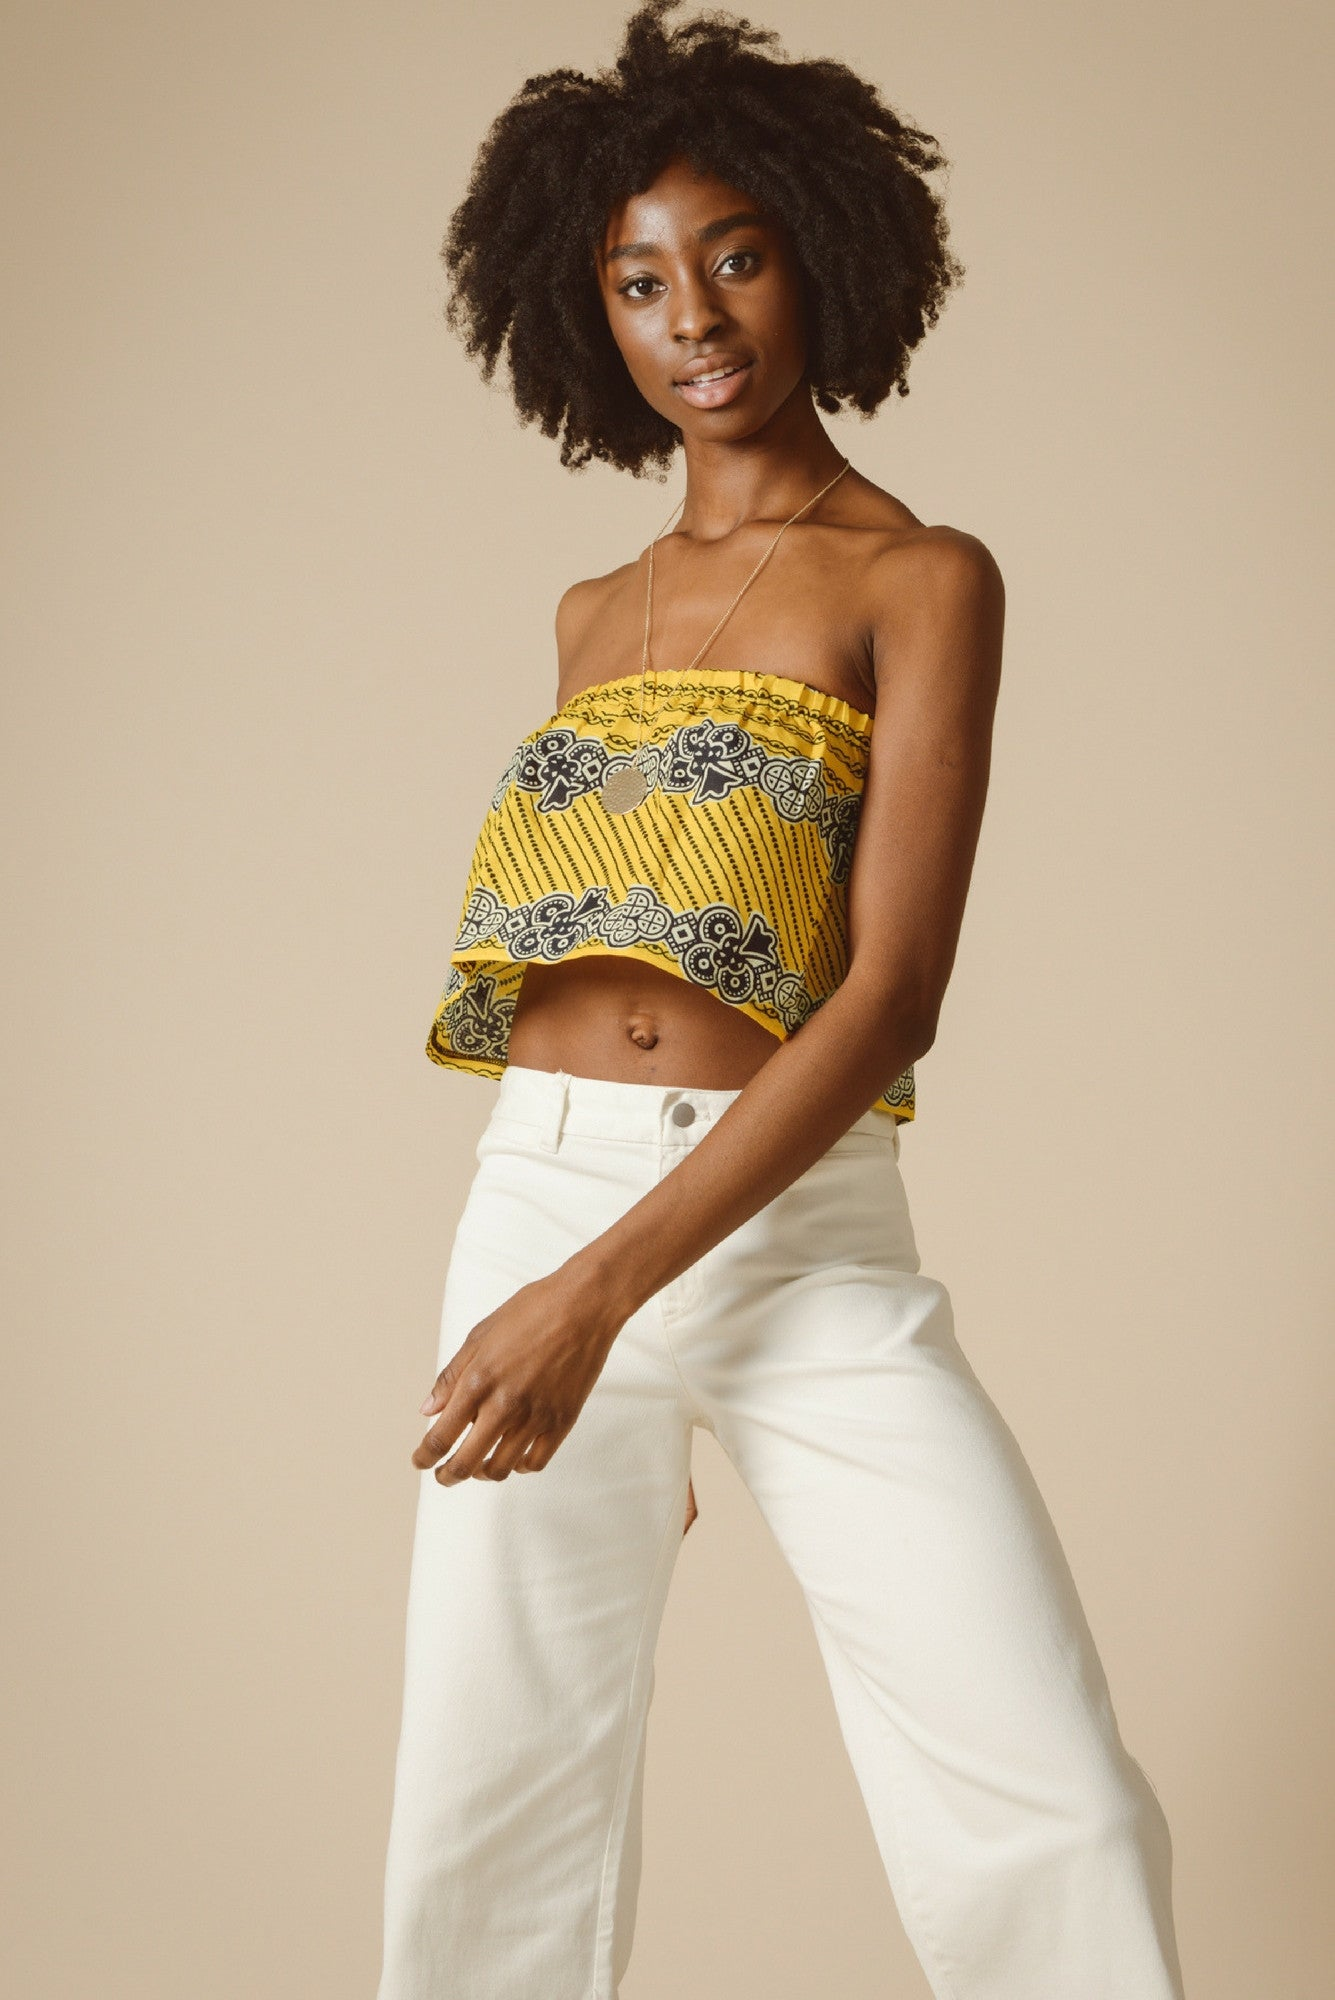 Alinafe Strapless Crop Top in Savannah Flower from Mayamiko